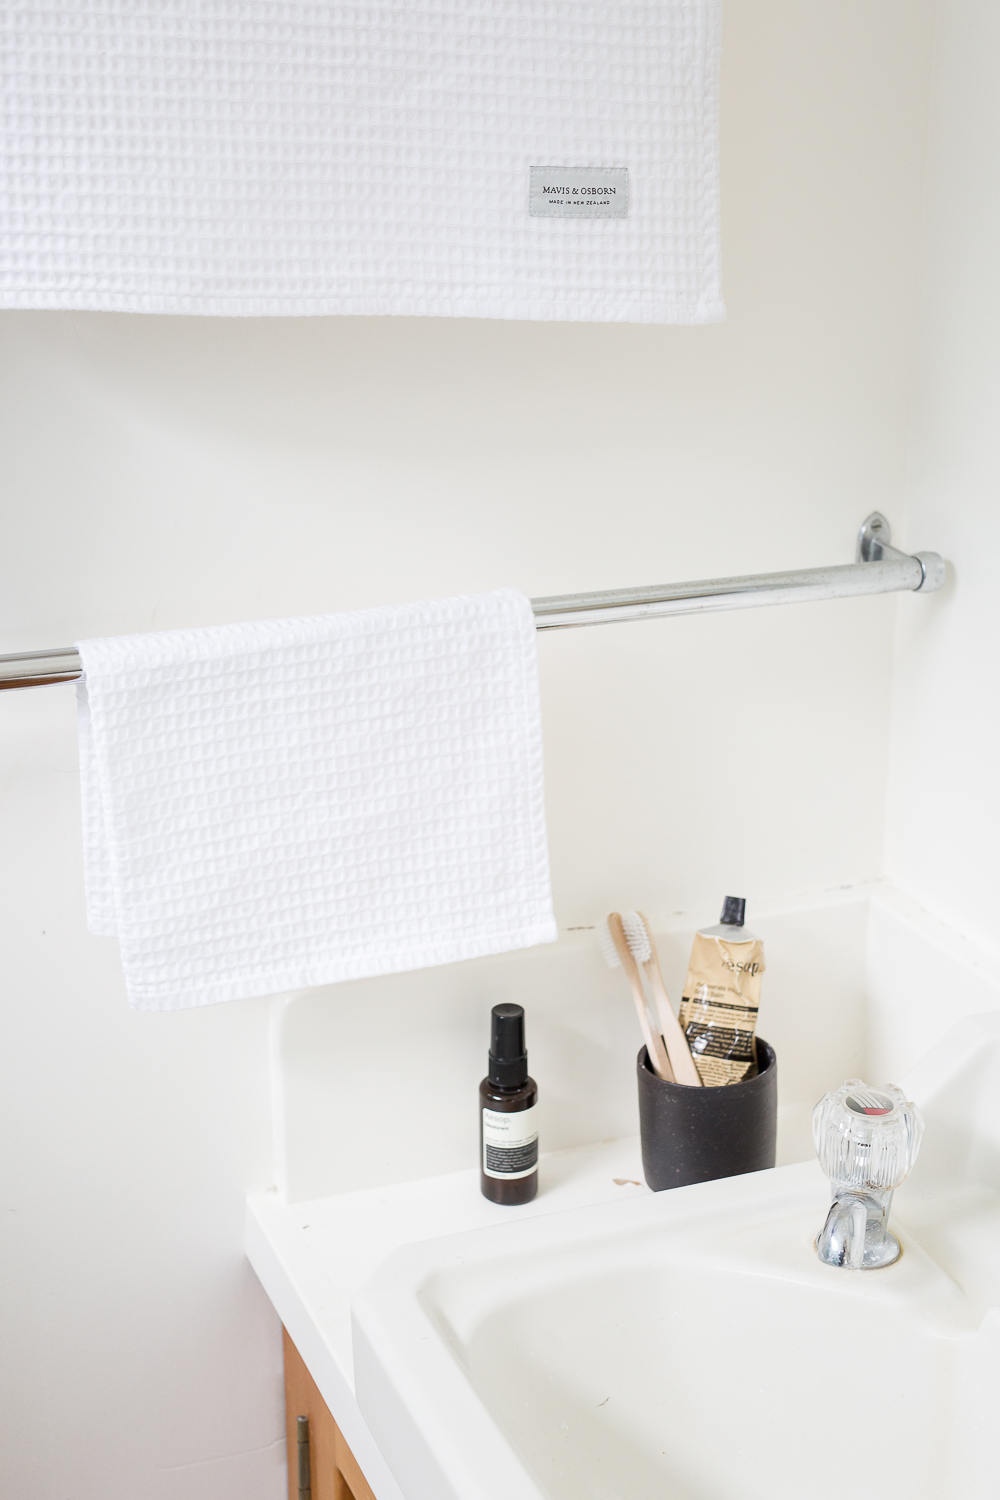 Waffle towels for Mavis & Osborn, styling & photography by Aimee Magne